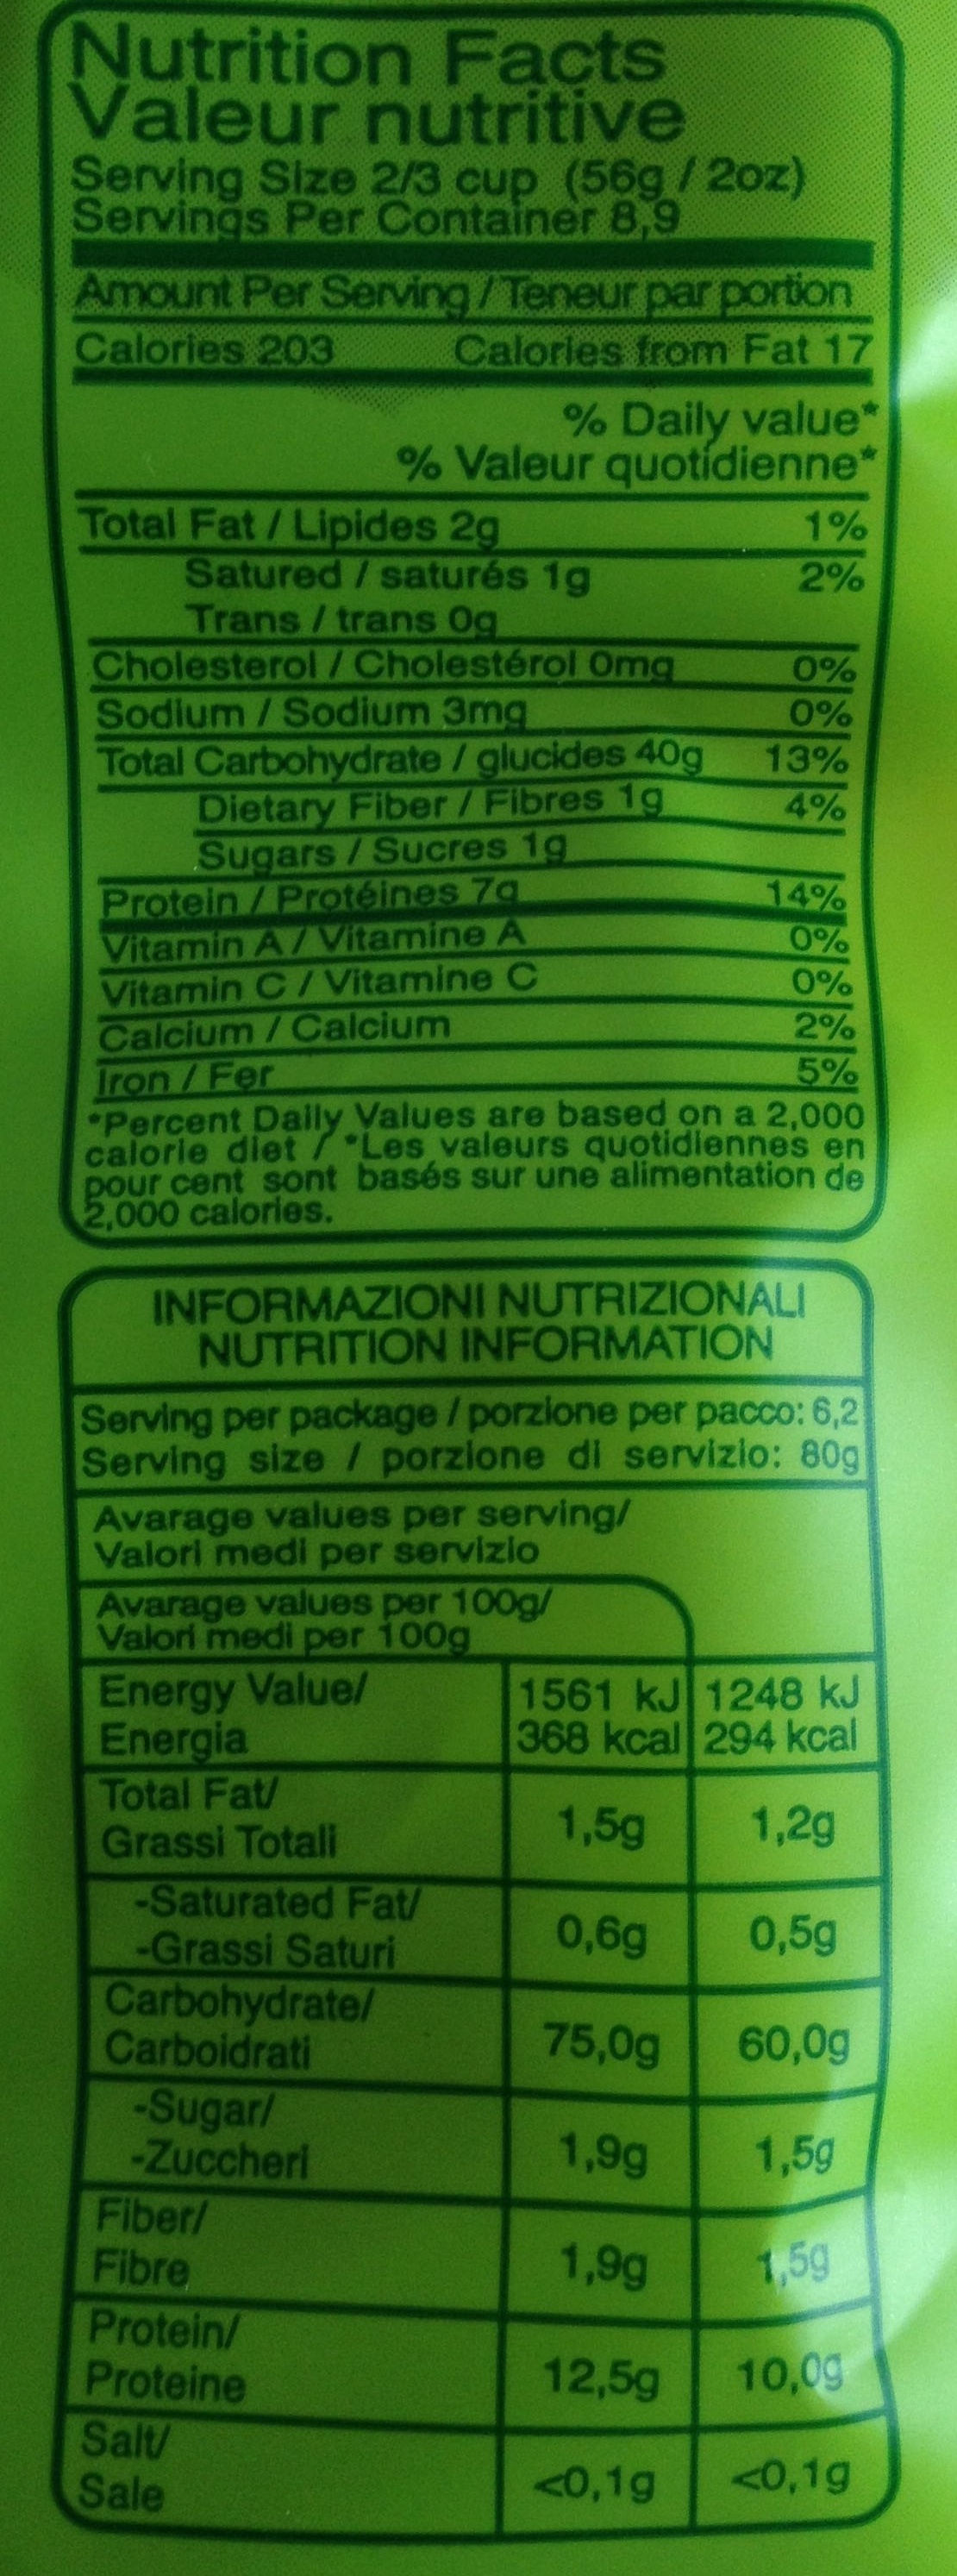 Pasta Biologica (Trafilata al bronzo) Torchietti - Nutrition facts - fr